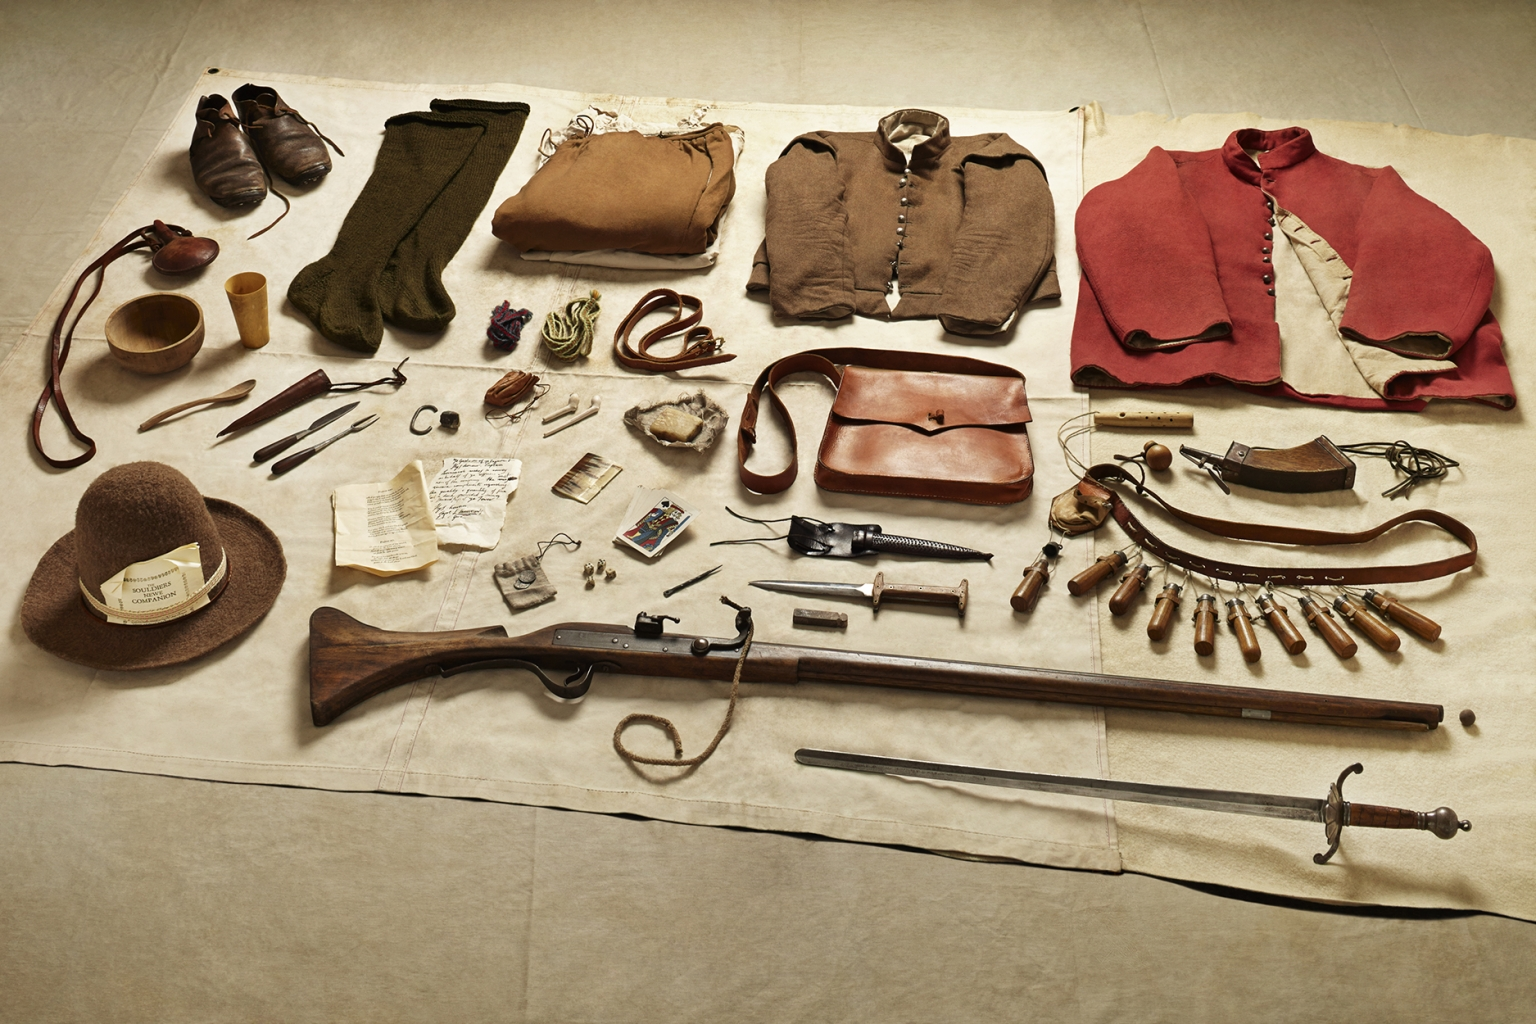 New Model Army Musketeer, Battle of Naseby, 1645 - Soldiers' Inventories - Photo by Thom Atkinson